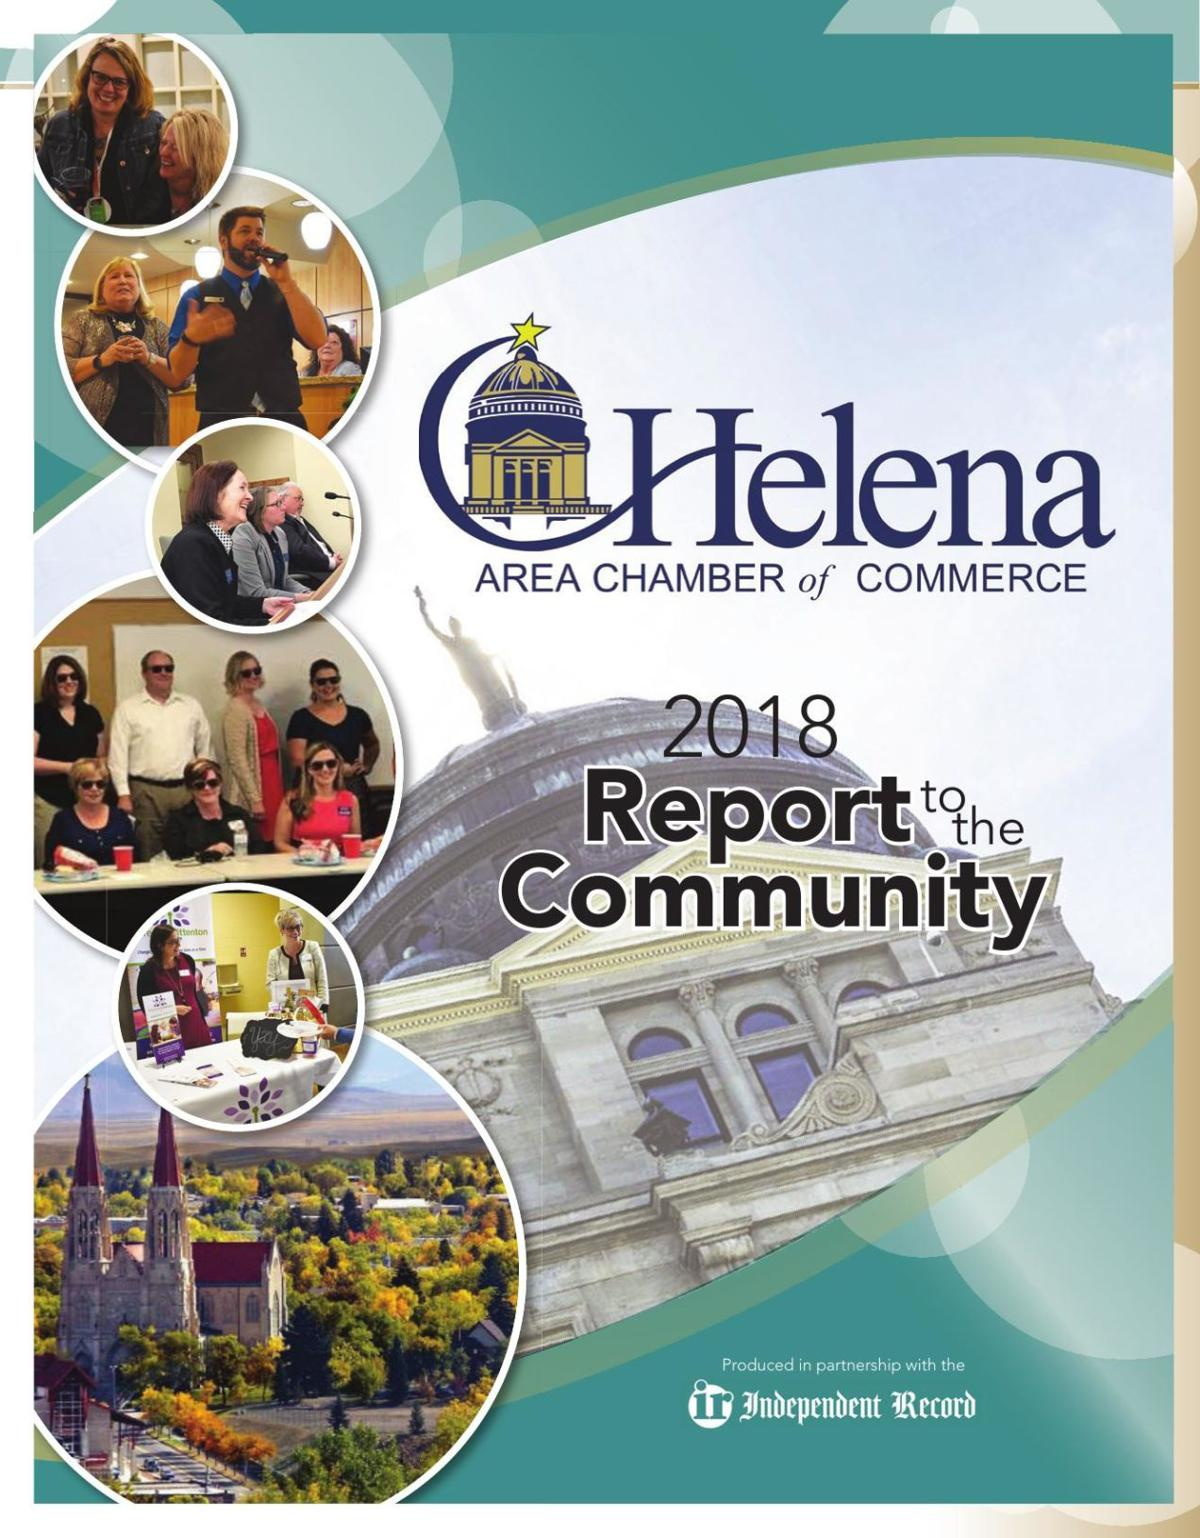 Helena Area Chamber of Commerce 2018 Report to the Community - February 4, 2018